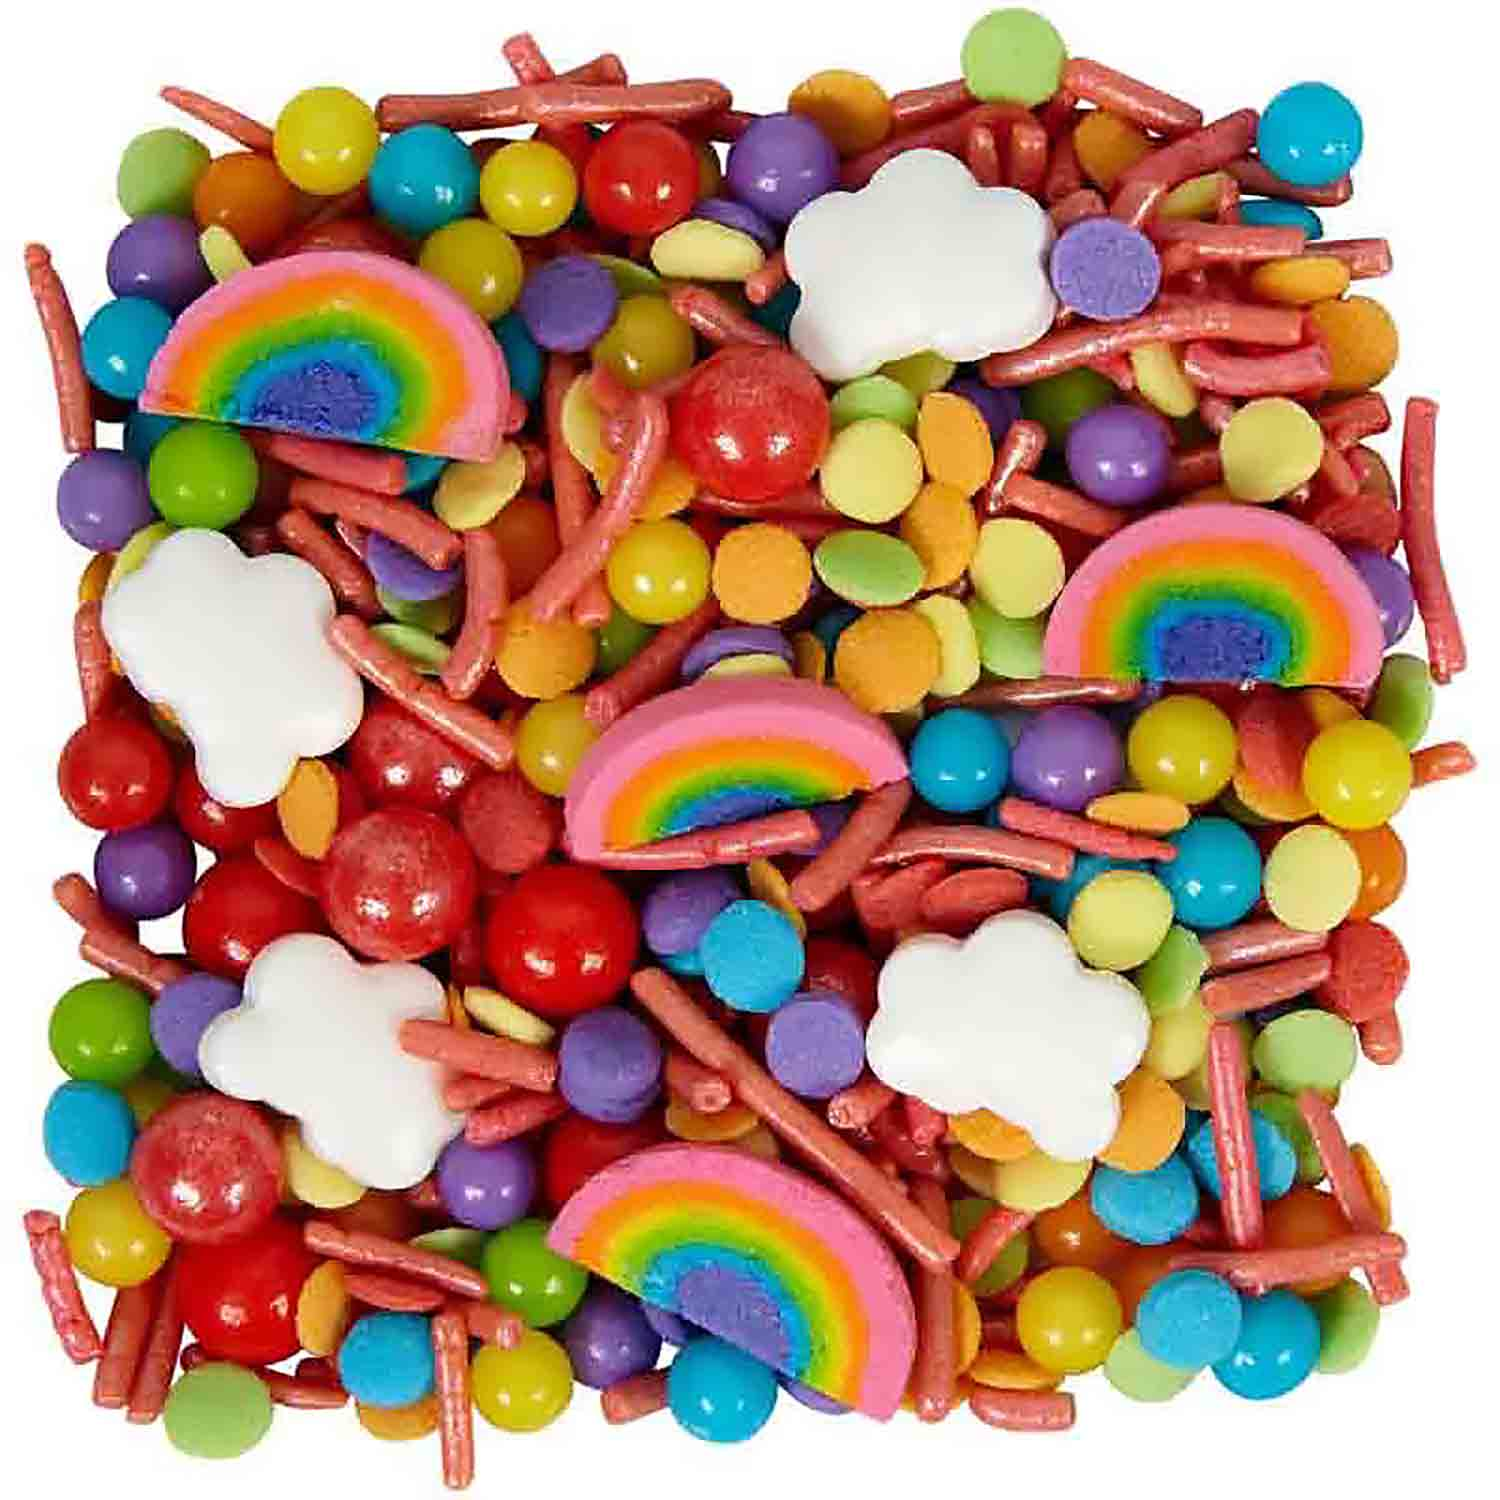 Rainbow Sprinkles Mix, 10 oz.